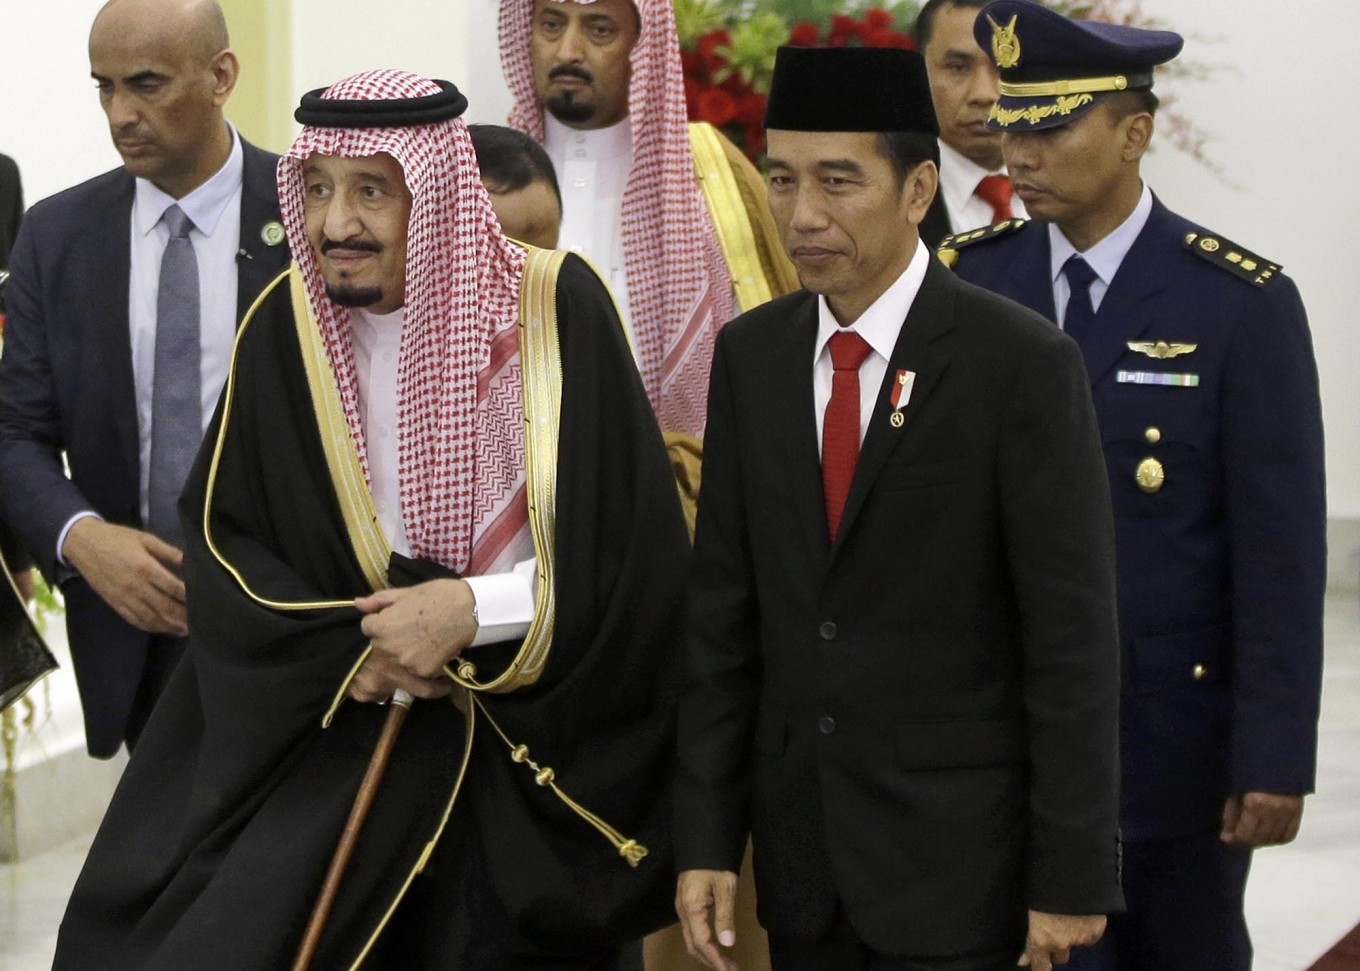 Indonesia should seek more economic cooperation with Gulf States